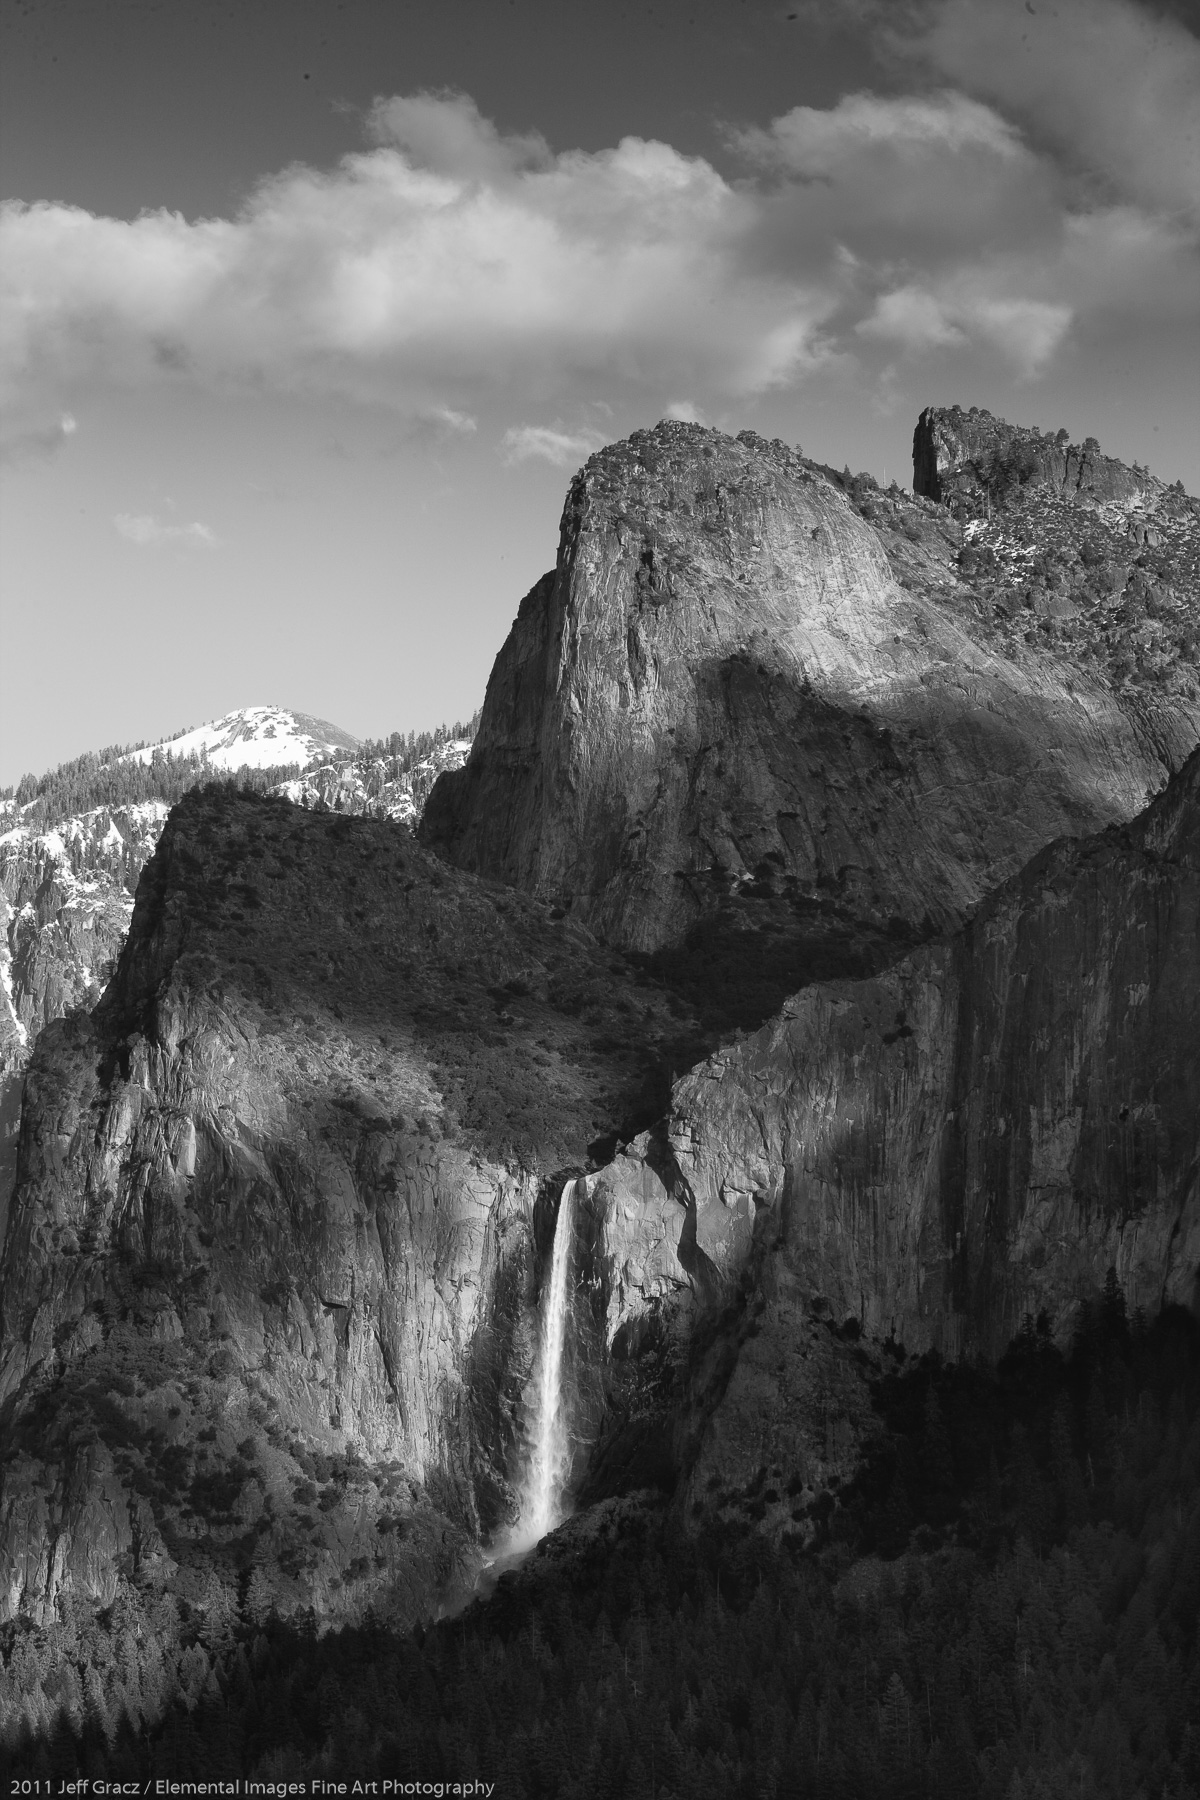 Bridalveil Falls with Cathedral Rocks | Yosemite National Park | CA | USA - © 2011 Jeff Gracz / Elemental Images Fine Art Photography - All Rights Reserved Worldwide